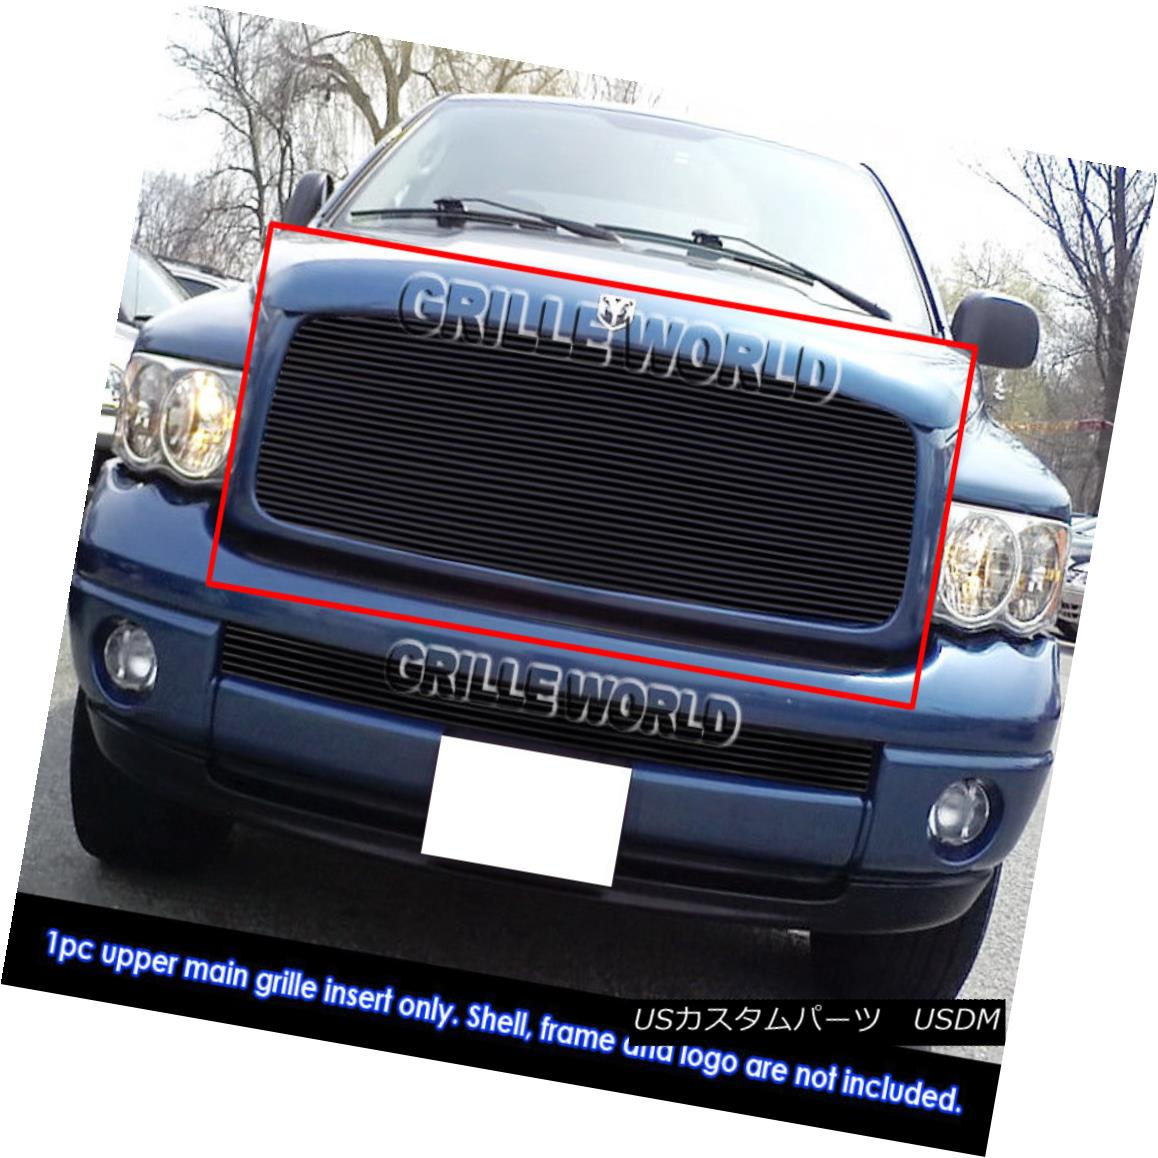 グリル For 02-05 Dodge Ram 1500/2500/3500 Black Billet Grille Insert 02-05 Dodge Ram 1500/2500/3500 Black Billet Grille Insert用